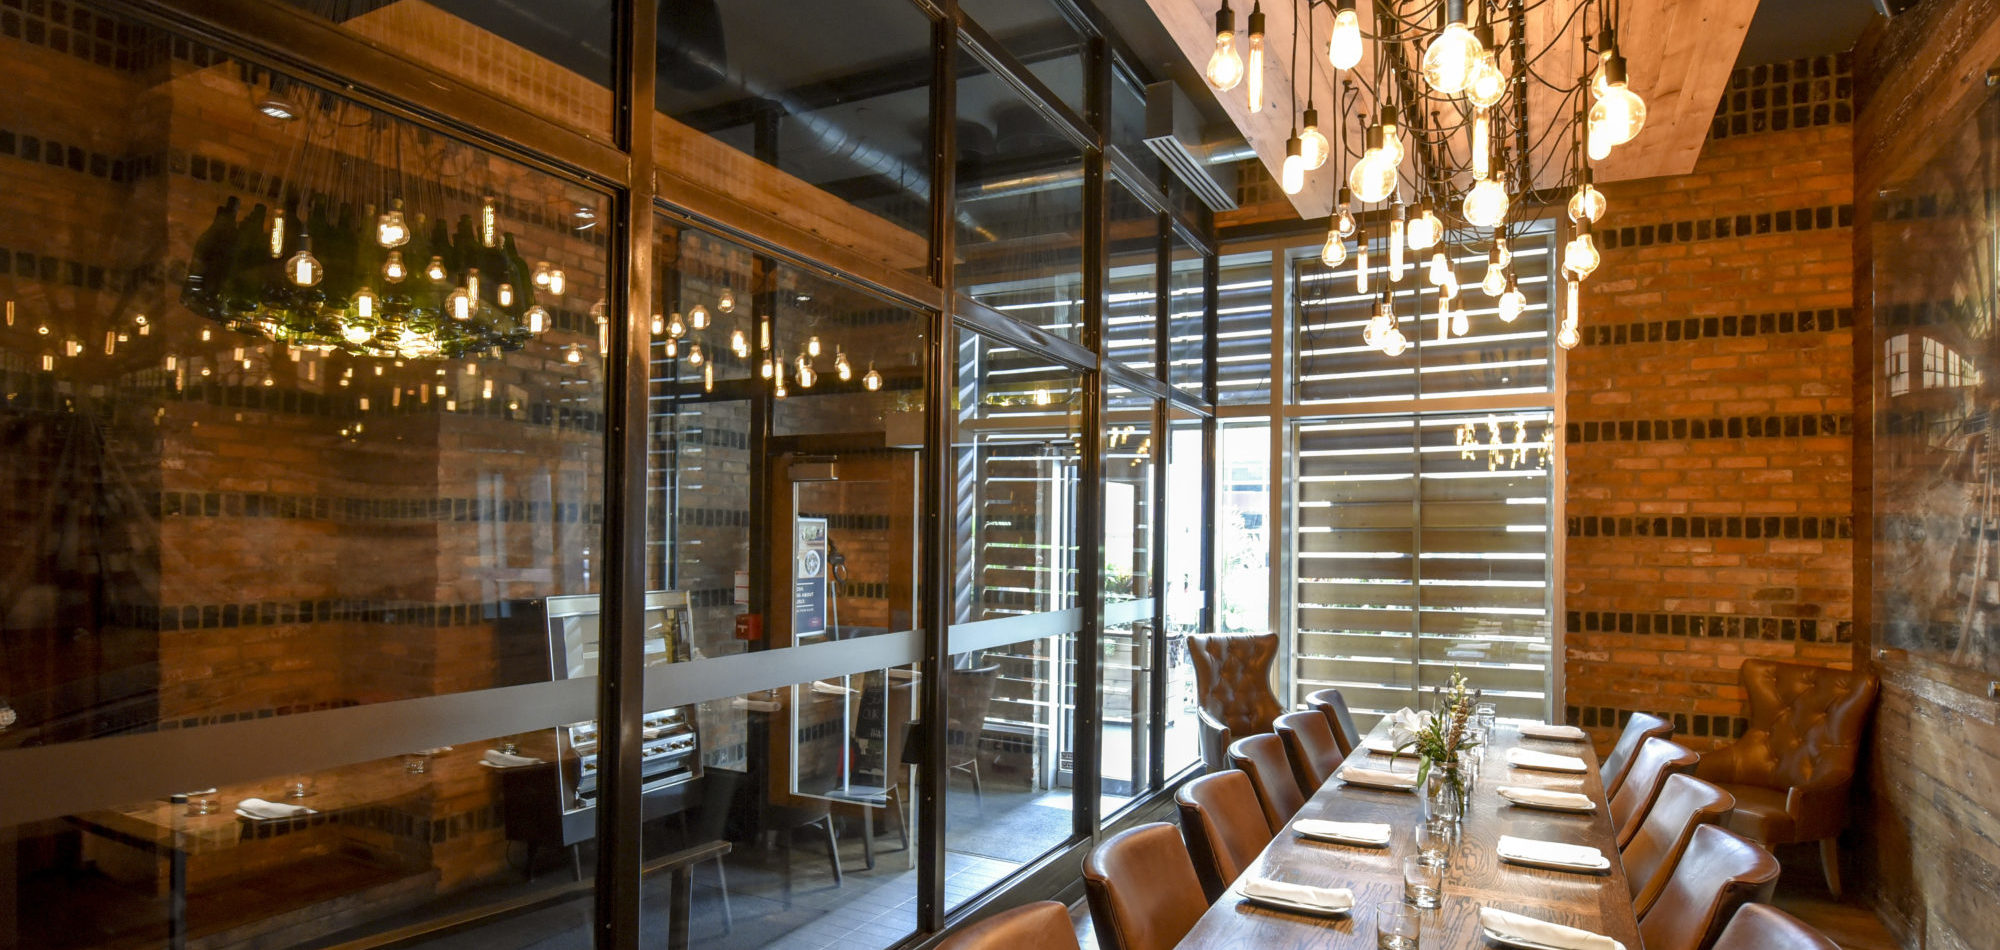 reds tavern Offering the perfect blend of modern flair and timeless sophistication, reds on adelaide features passionate service, chef-inspired menus and an authentic wine list.